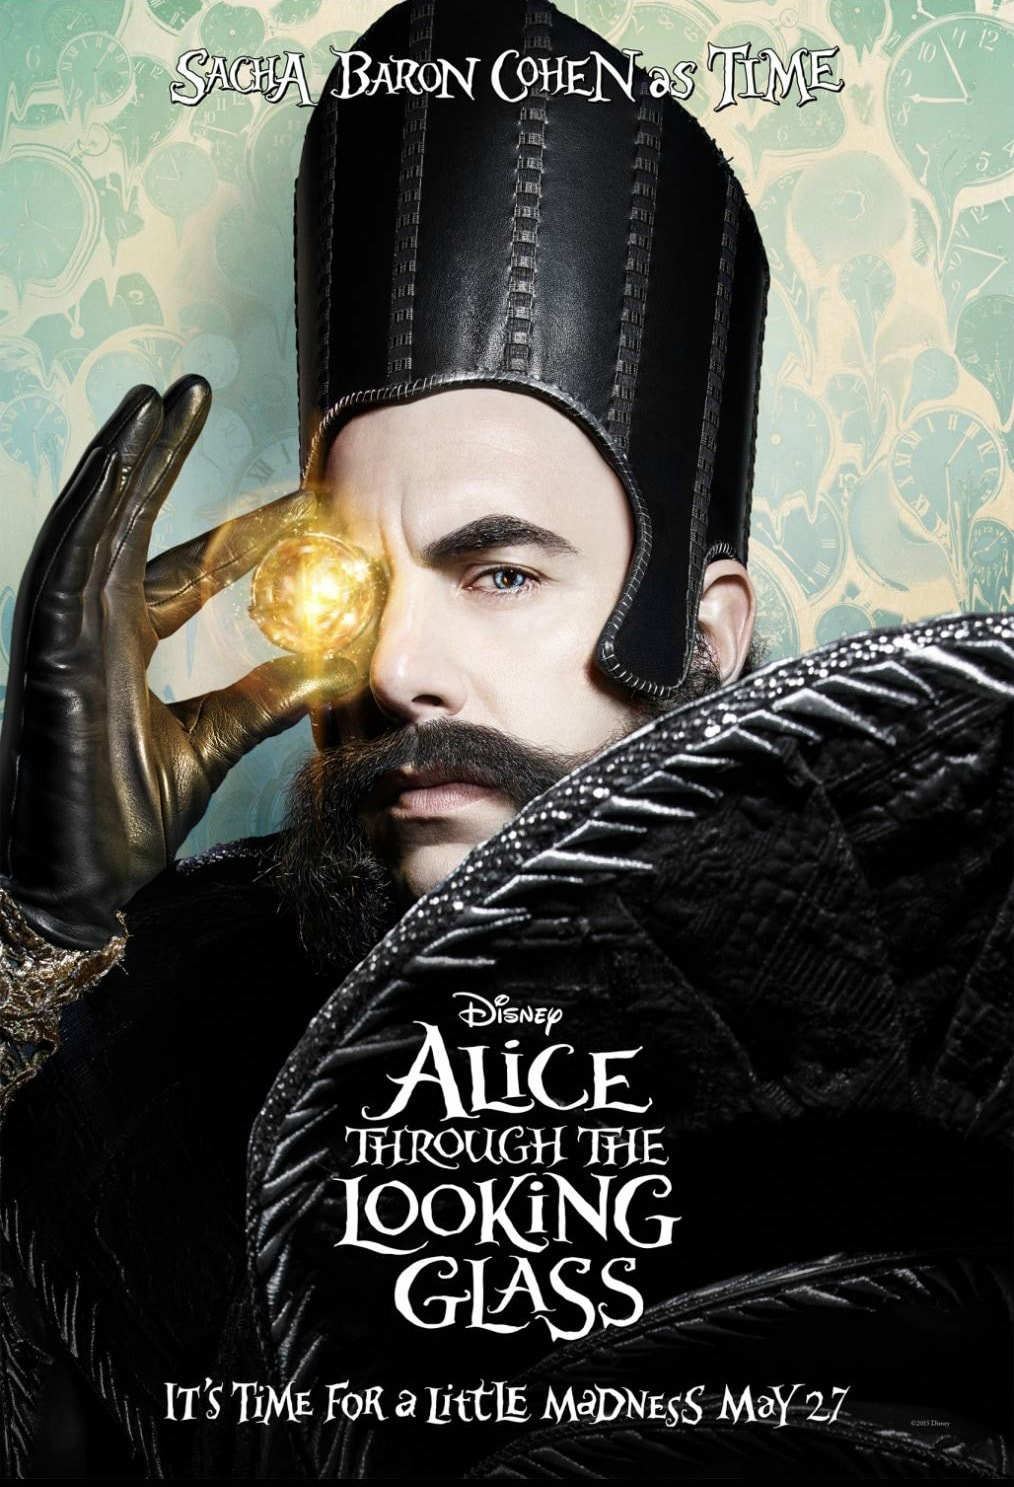 First Look: Disney's ALICE THROUGH THE LOOKING GLASS New Trailer